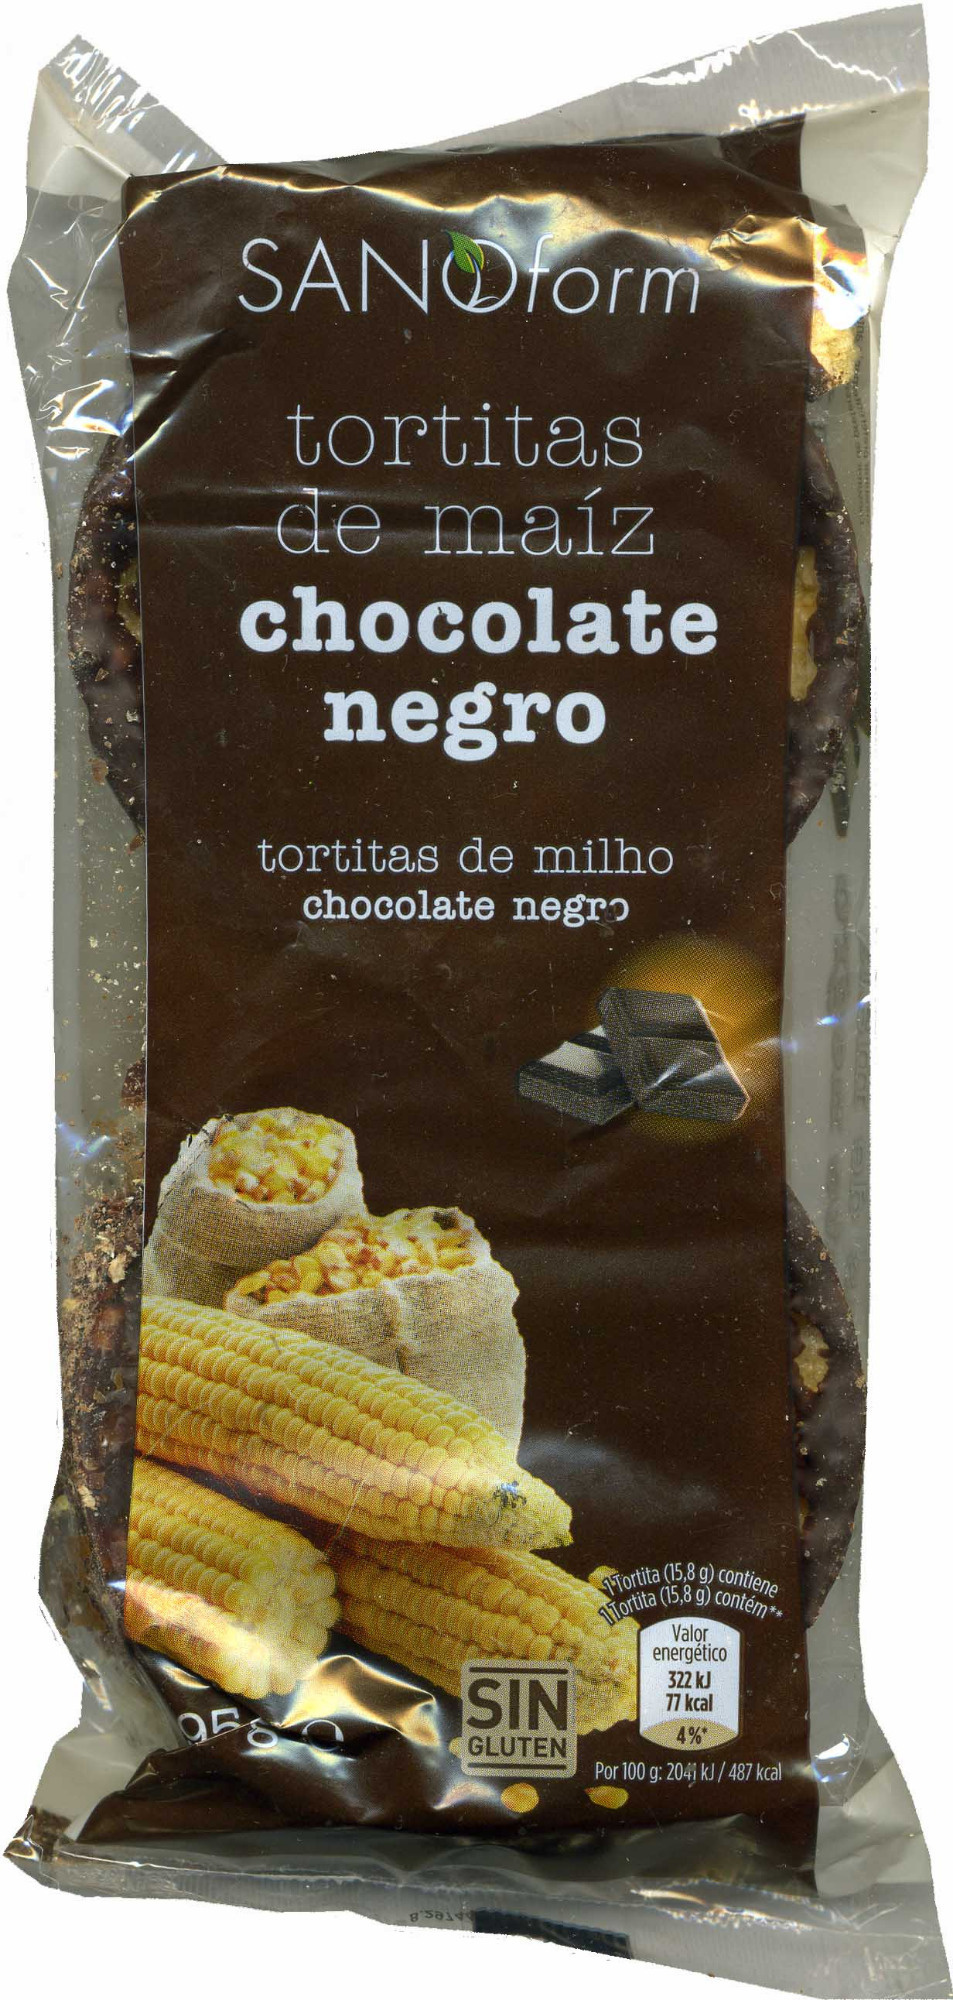 Tortitas De Maíz Con Chocolate Negro - Product